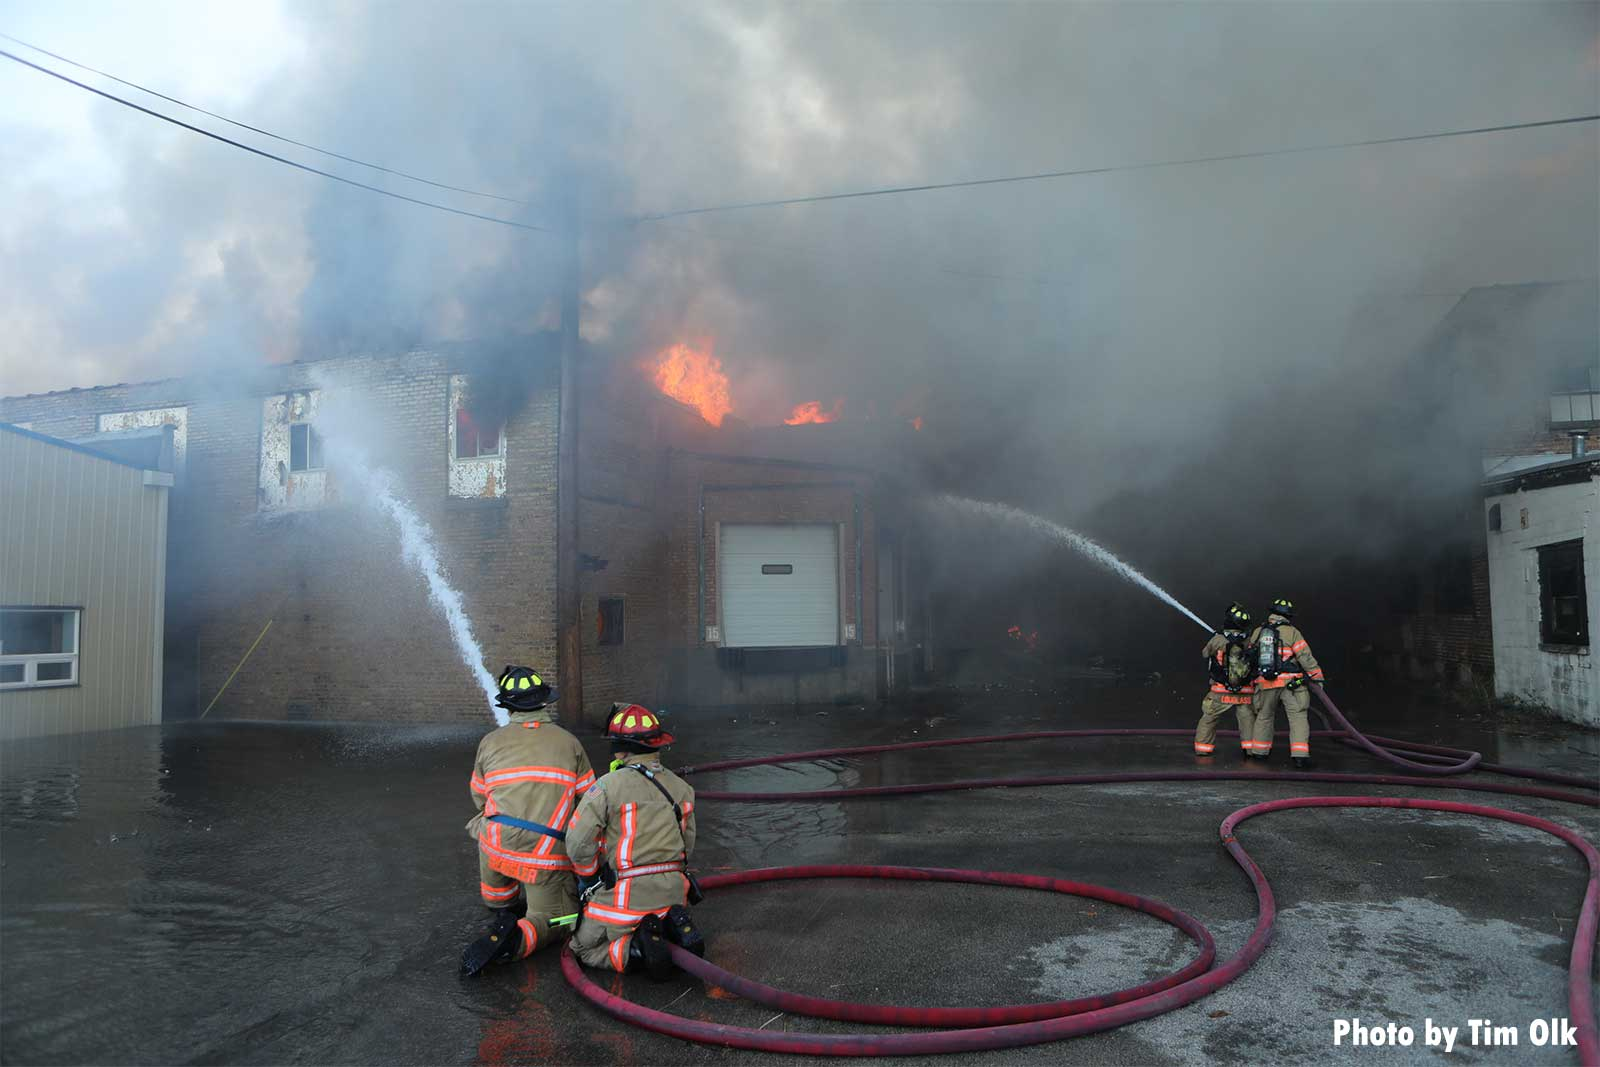 Two pairs of firefighters with hose streams on building